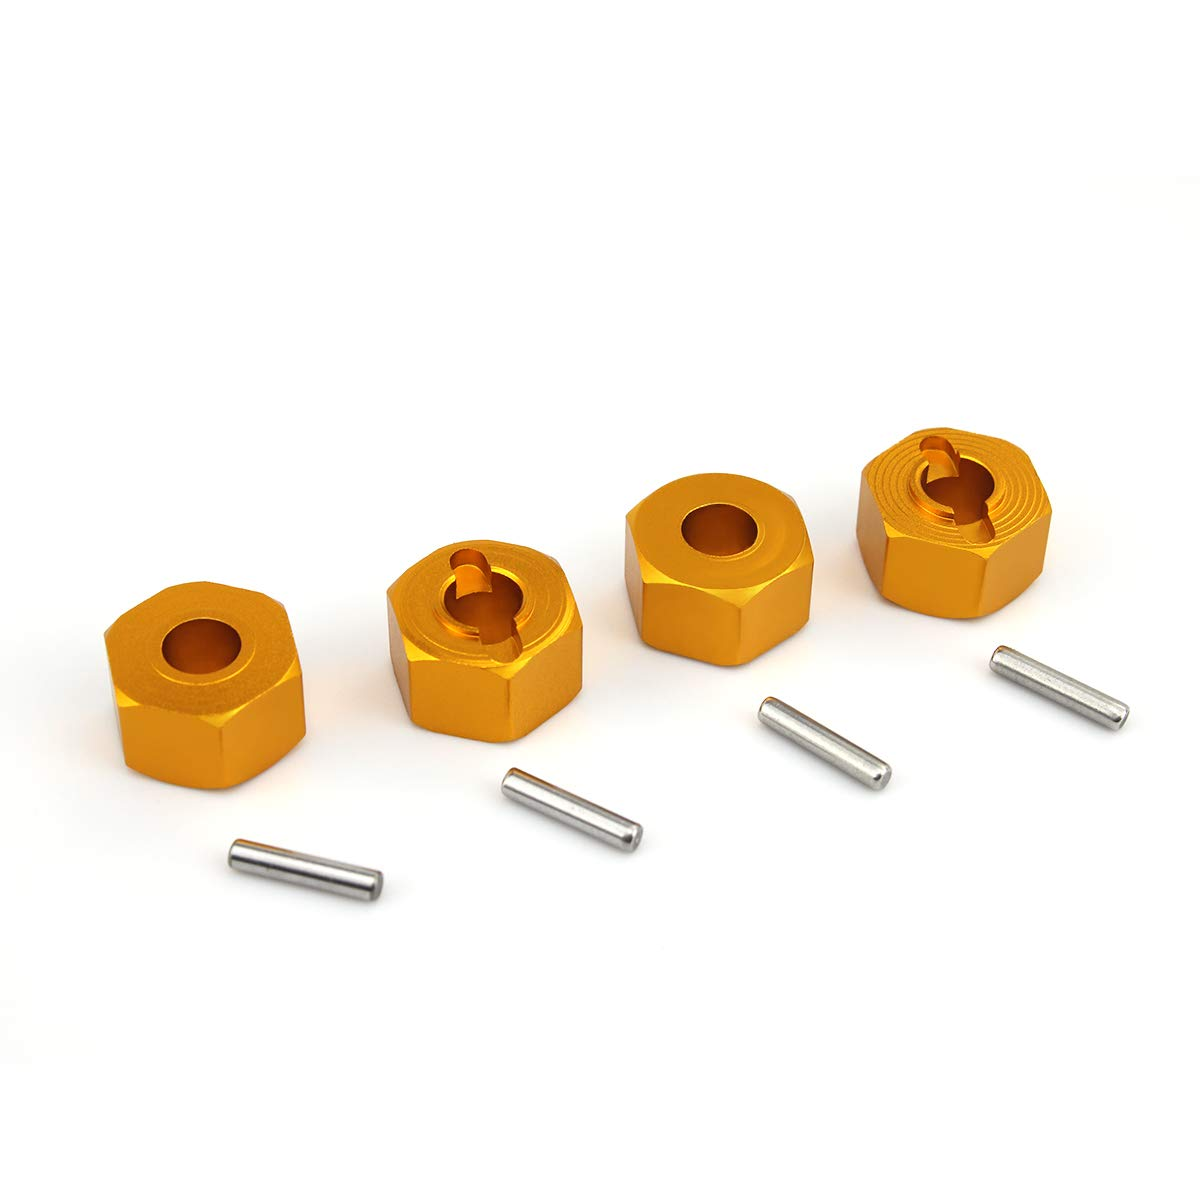 Metal Wheel Hex Nuts 12mm Drive Hubs with Pins suitable for 1//10 RC car